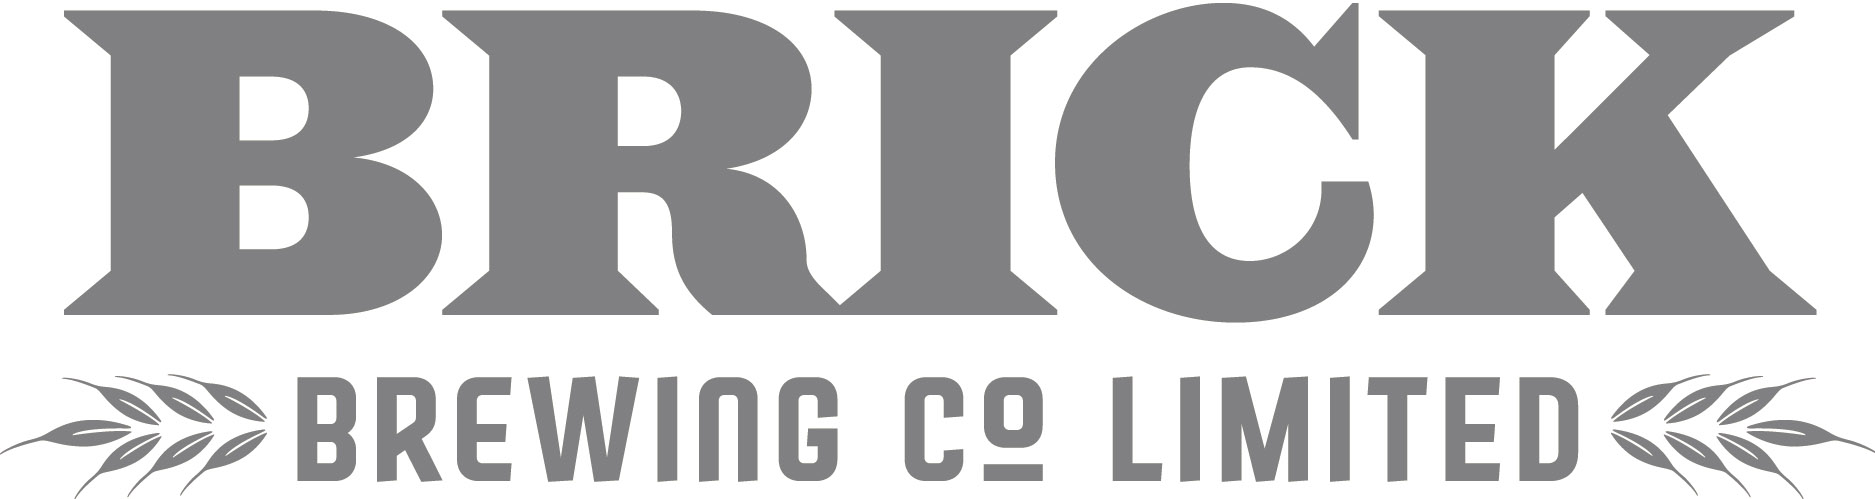 brick brewing logo.jpg